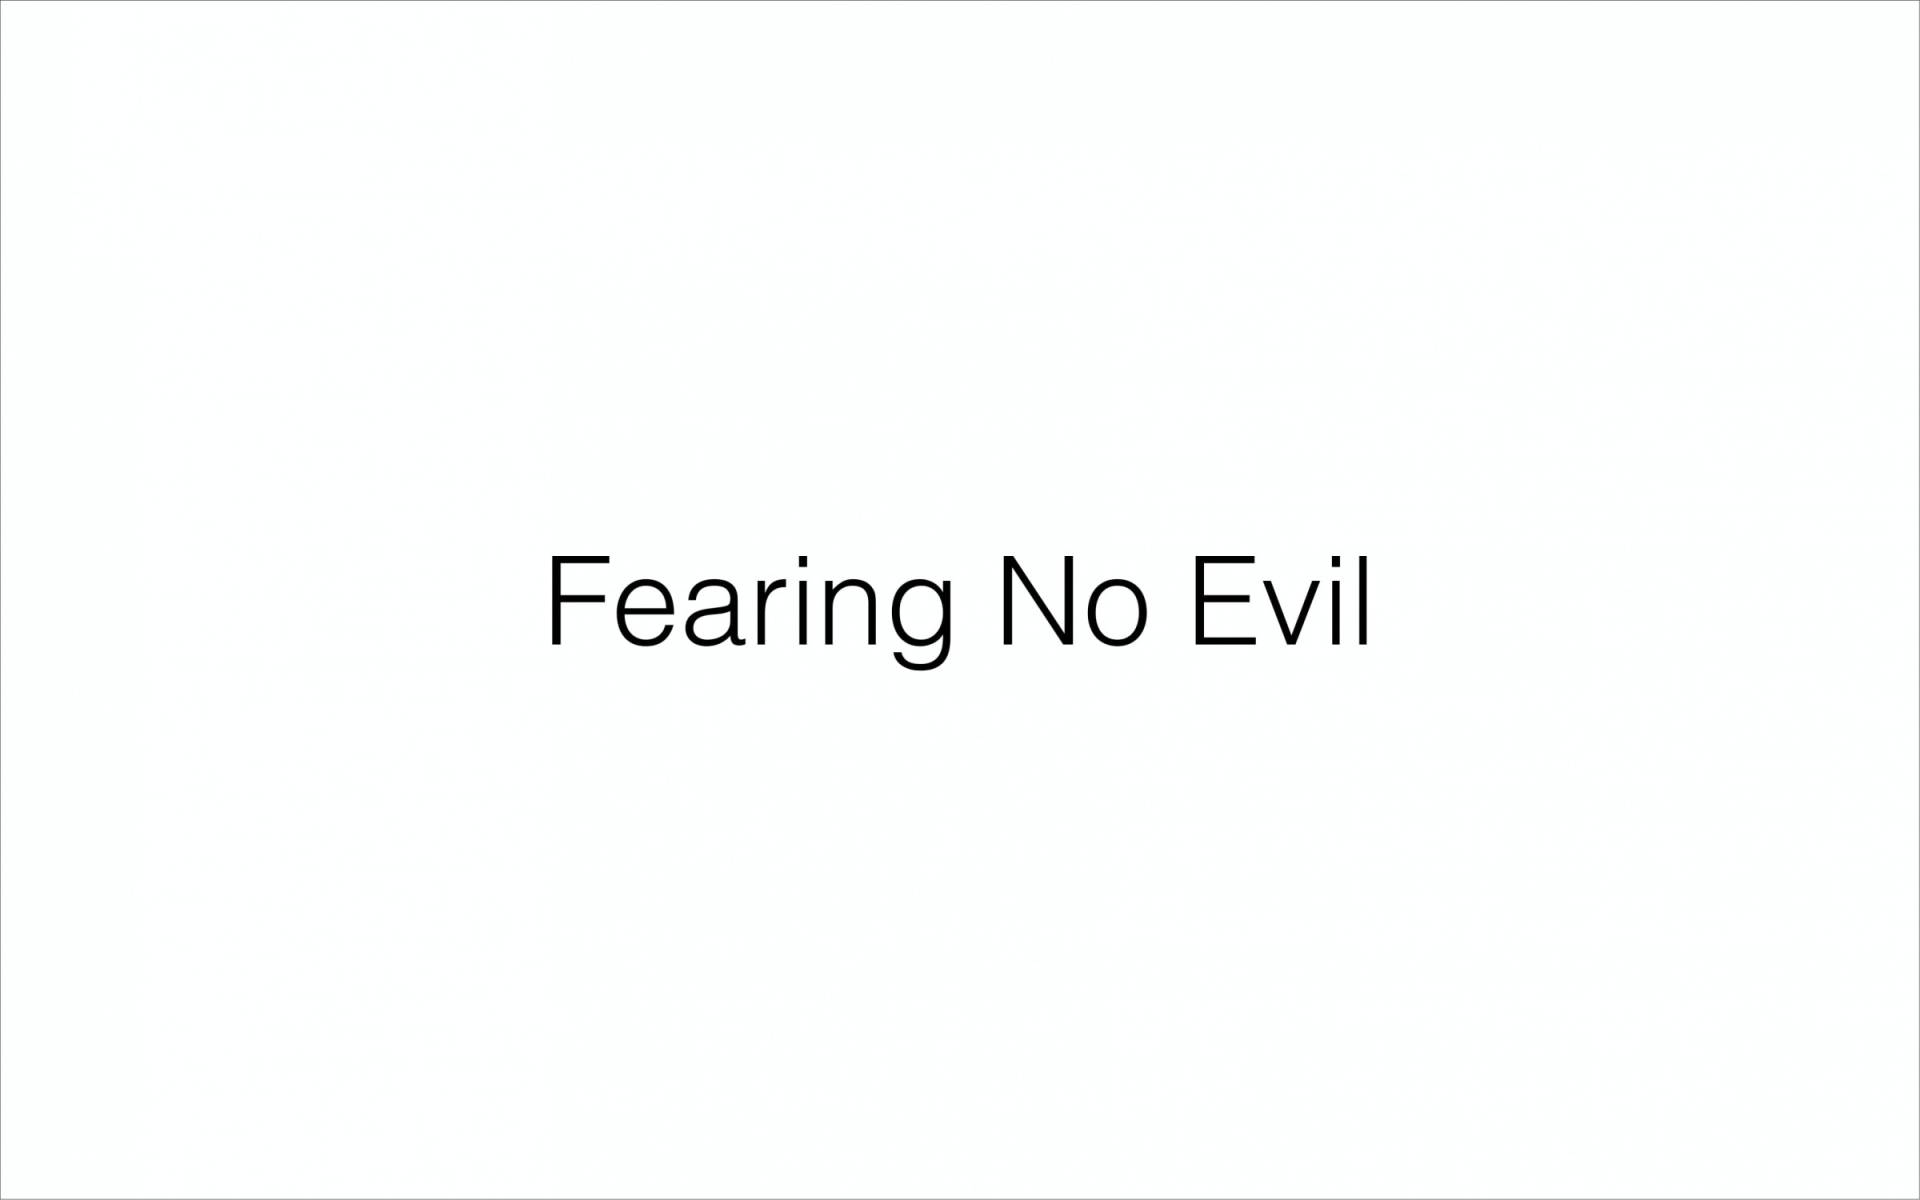 BC&D-49 - Lesson 19-3 - Fear And Worry - Part 3-10